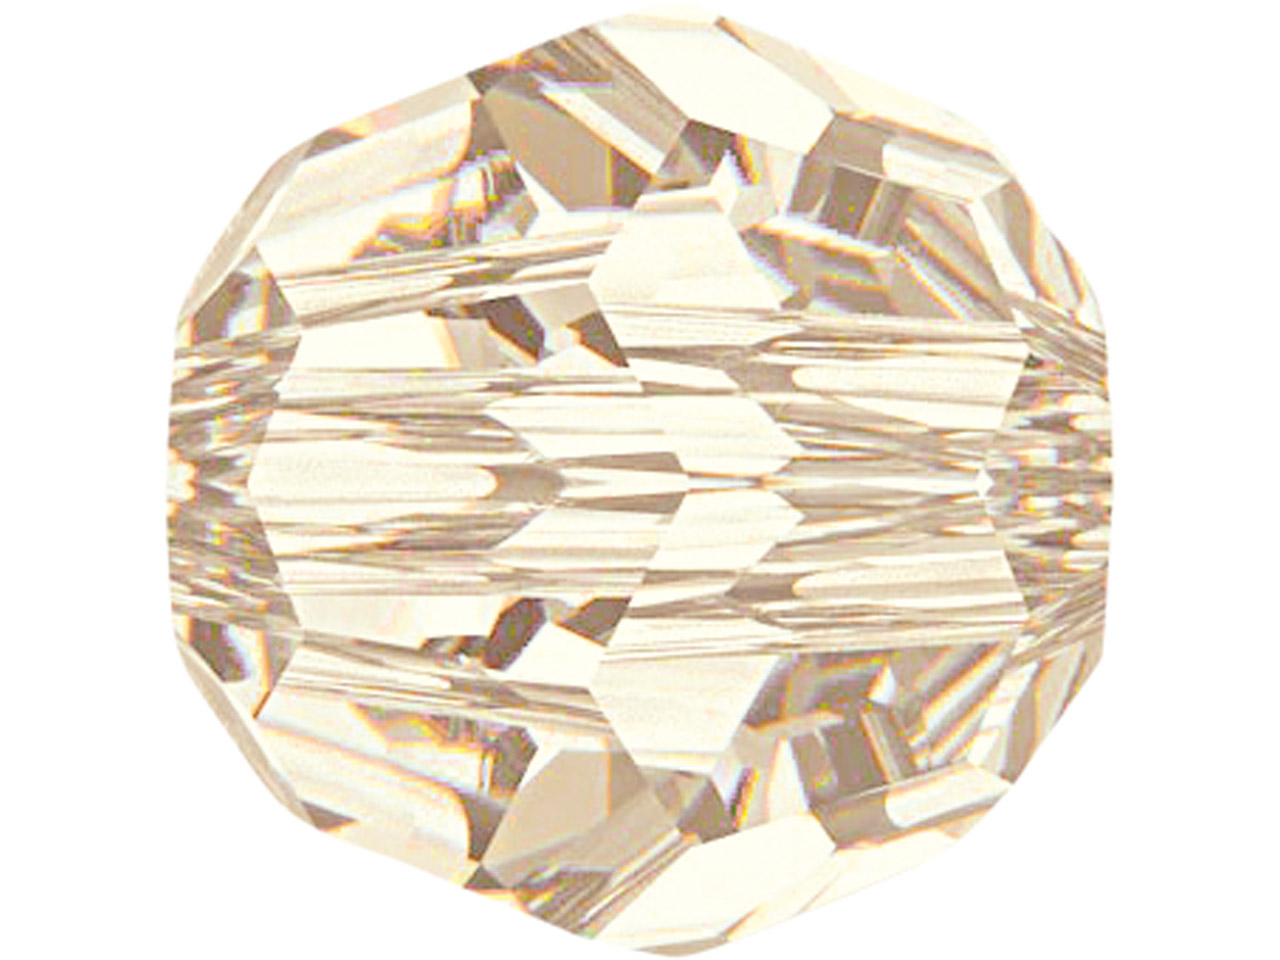 Swarovski Crystal Pack of 6 Round, 5000, 8mm, Light Silk